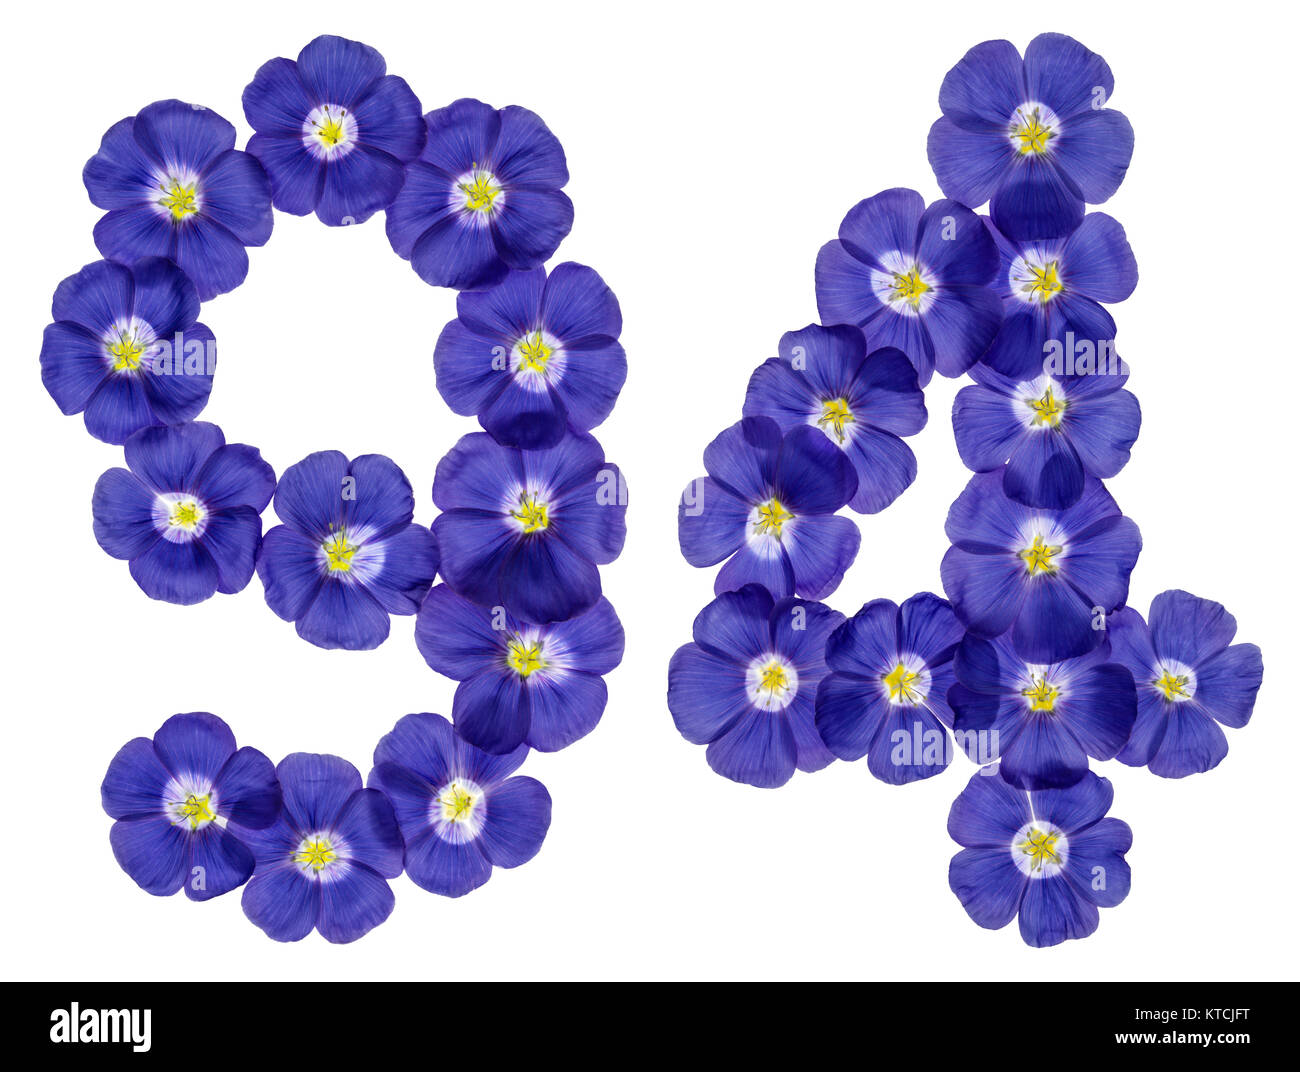 Arabic numeral 94, ninety four, from blue flowers of flax, isolated on white background Stock Photo